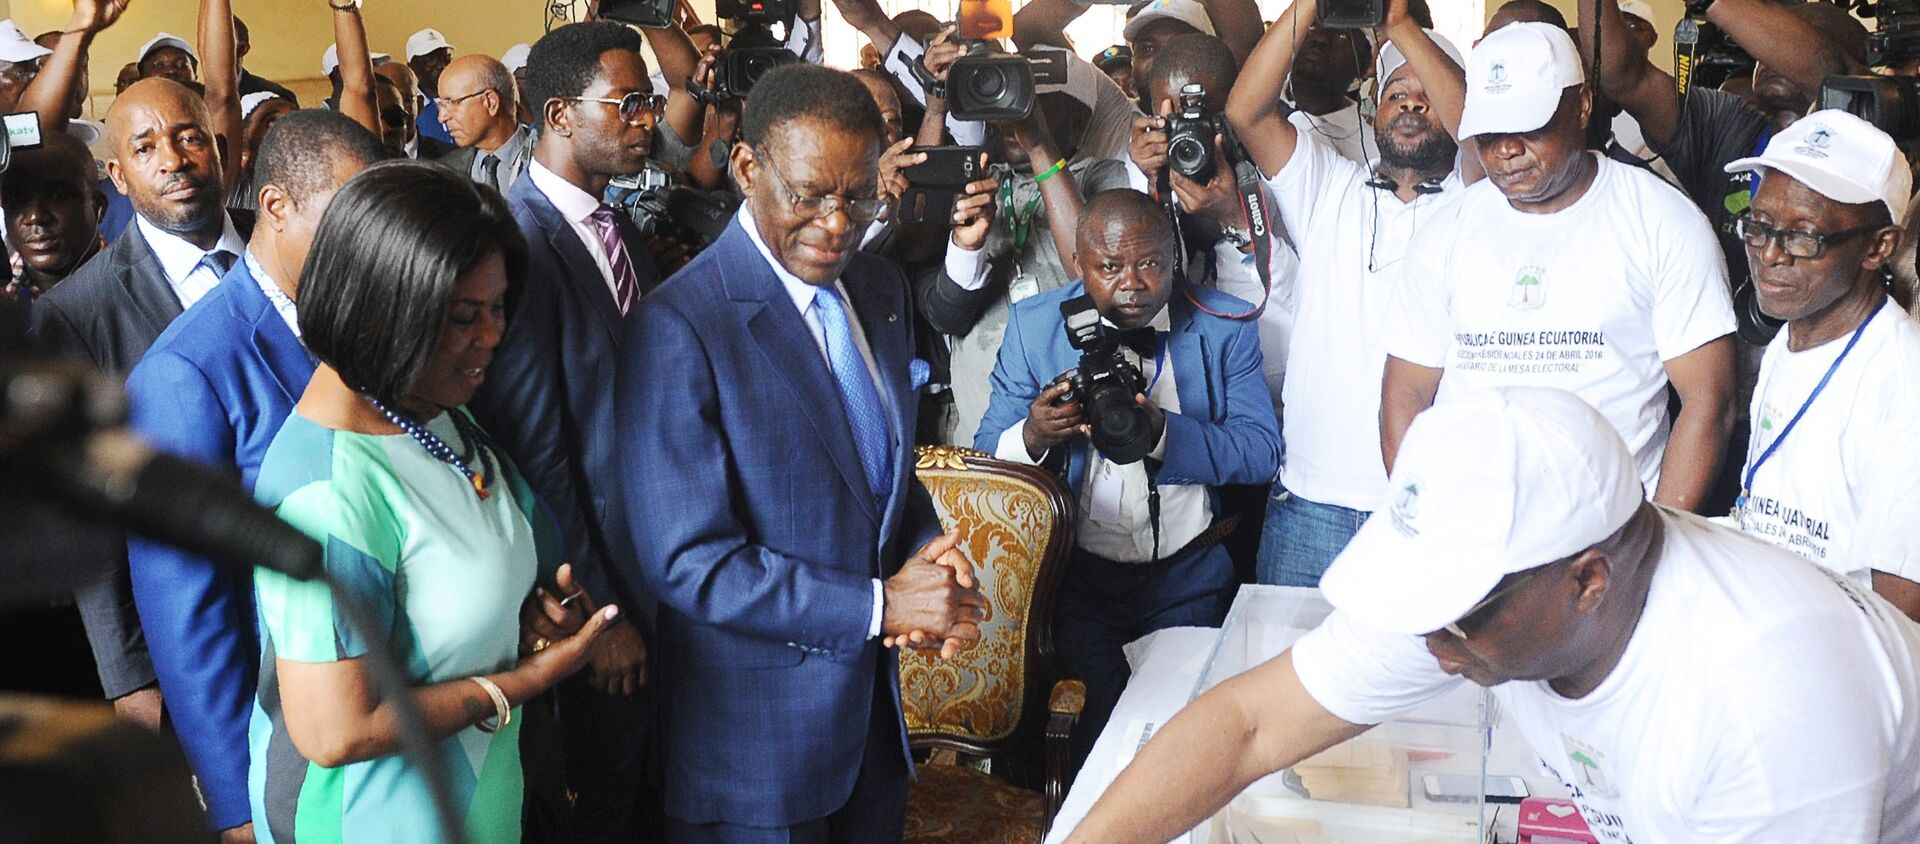 Equatorial Guinea incumbent president and candidate Teodoro Obiang Nguema (C) and his wife Constancia Mangue (L) arrive at the polling station on April 24, 2016 in Malabo during the presidential election vote. - Sputnik France, 1920, 25.04.2016